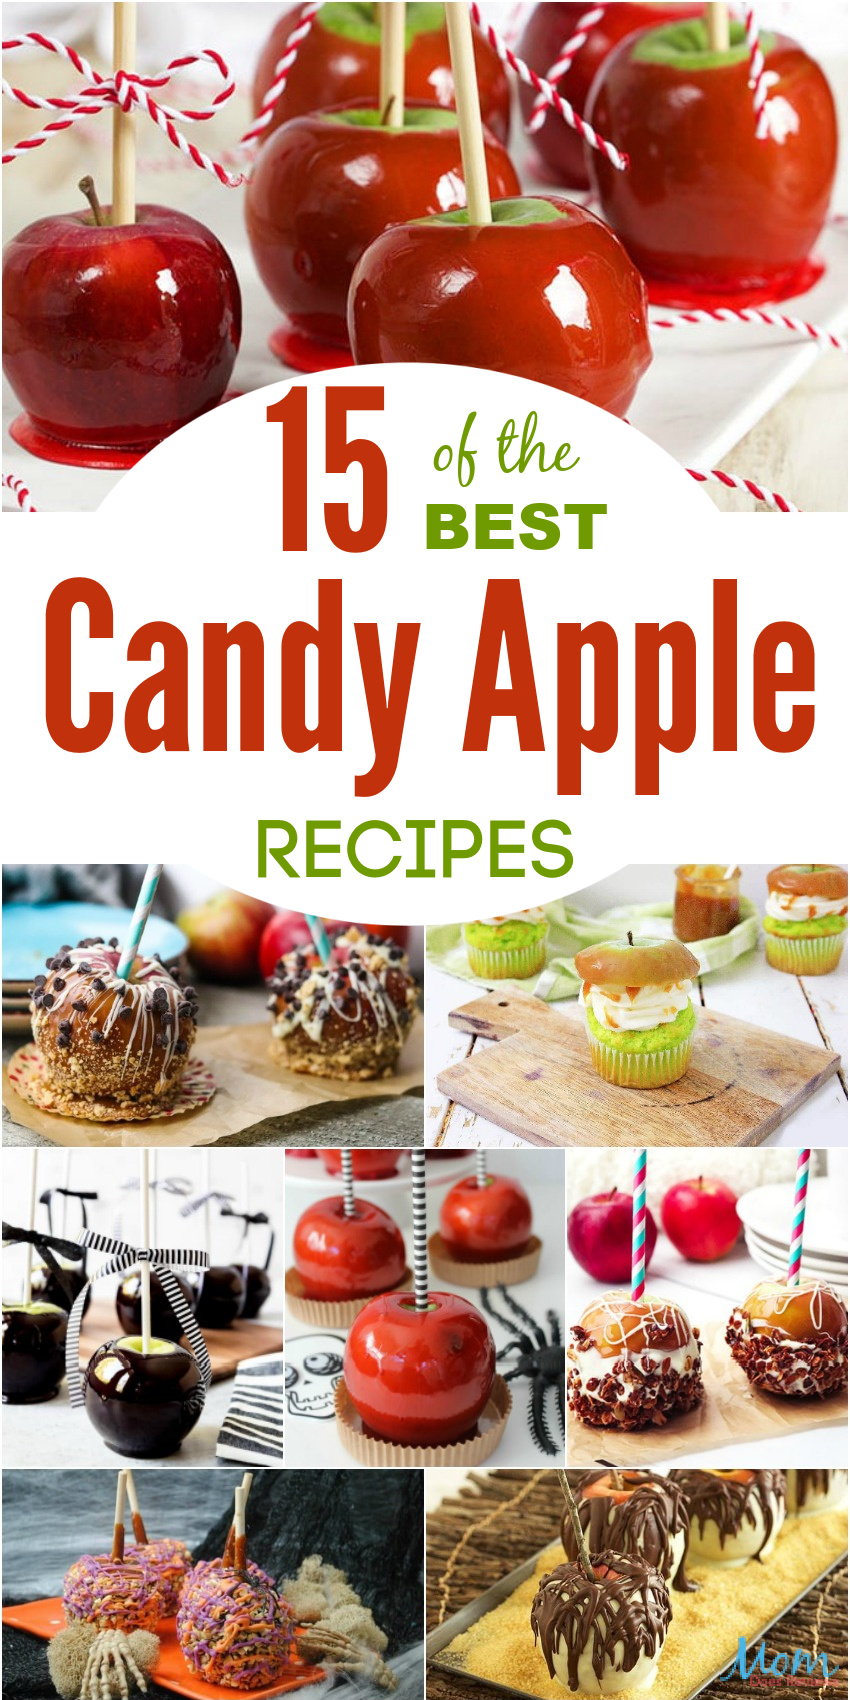 15 of the Best Candy Apple Recipes You Simply Must Try #candy #recipes #sweets